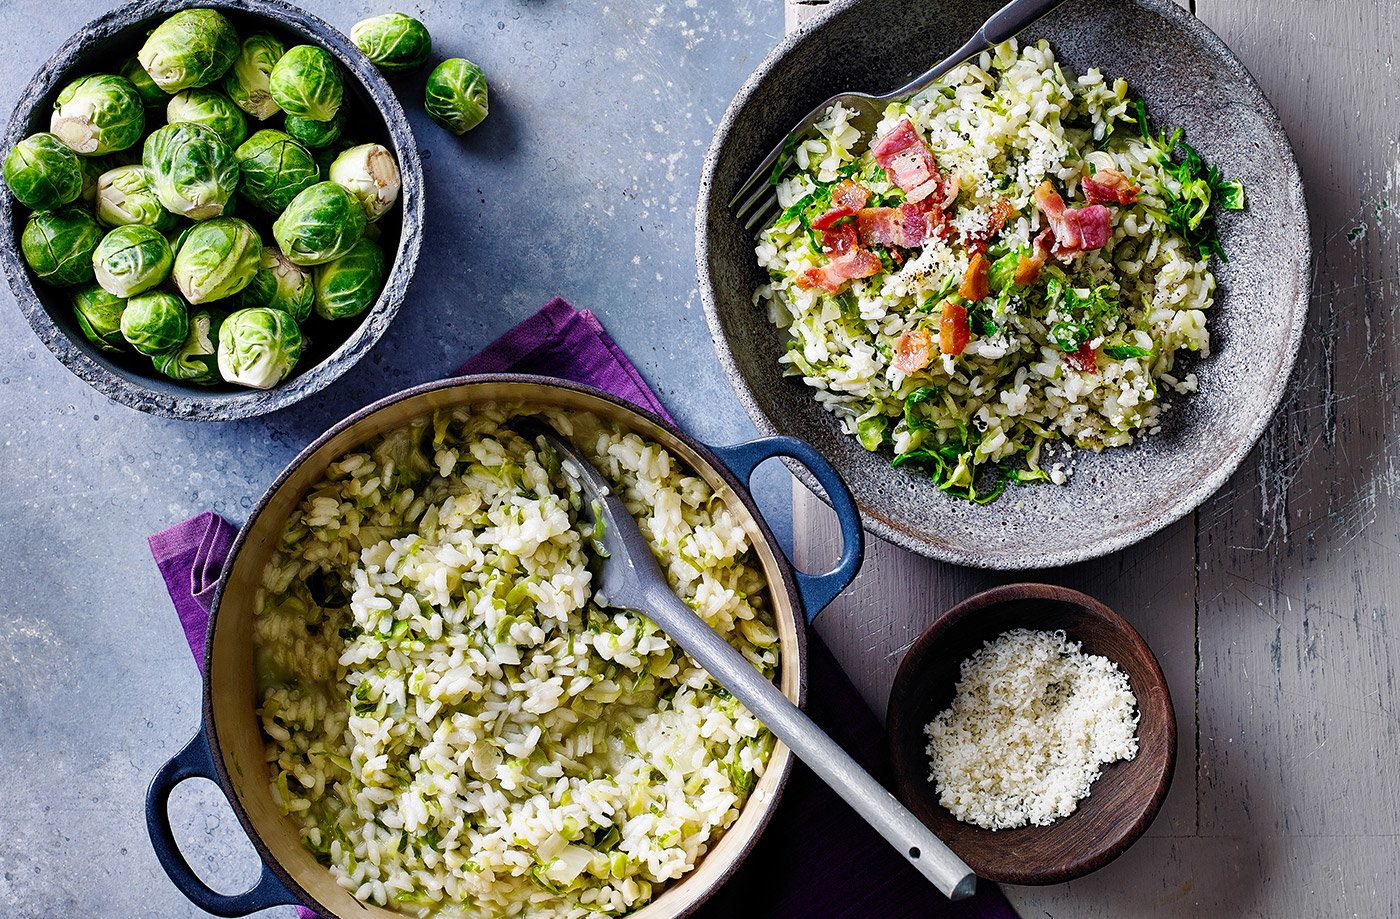 Creamy Brussels sprouts and bacon risotto recipe